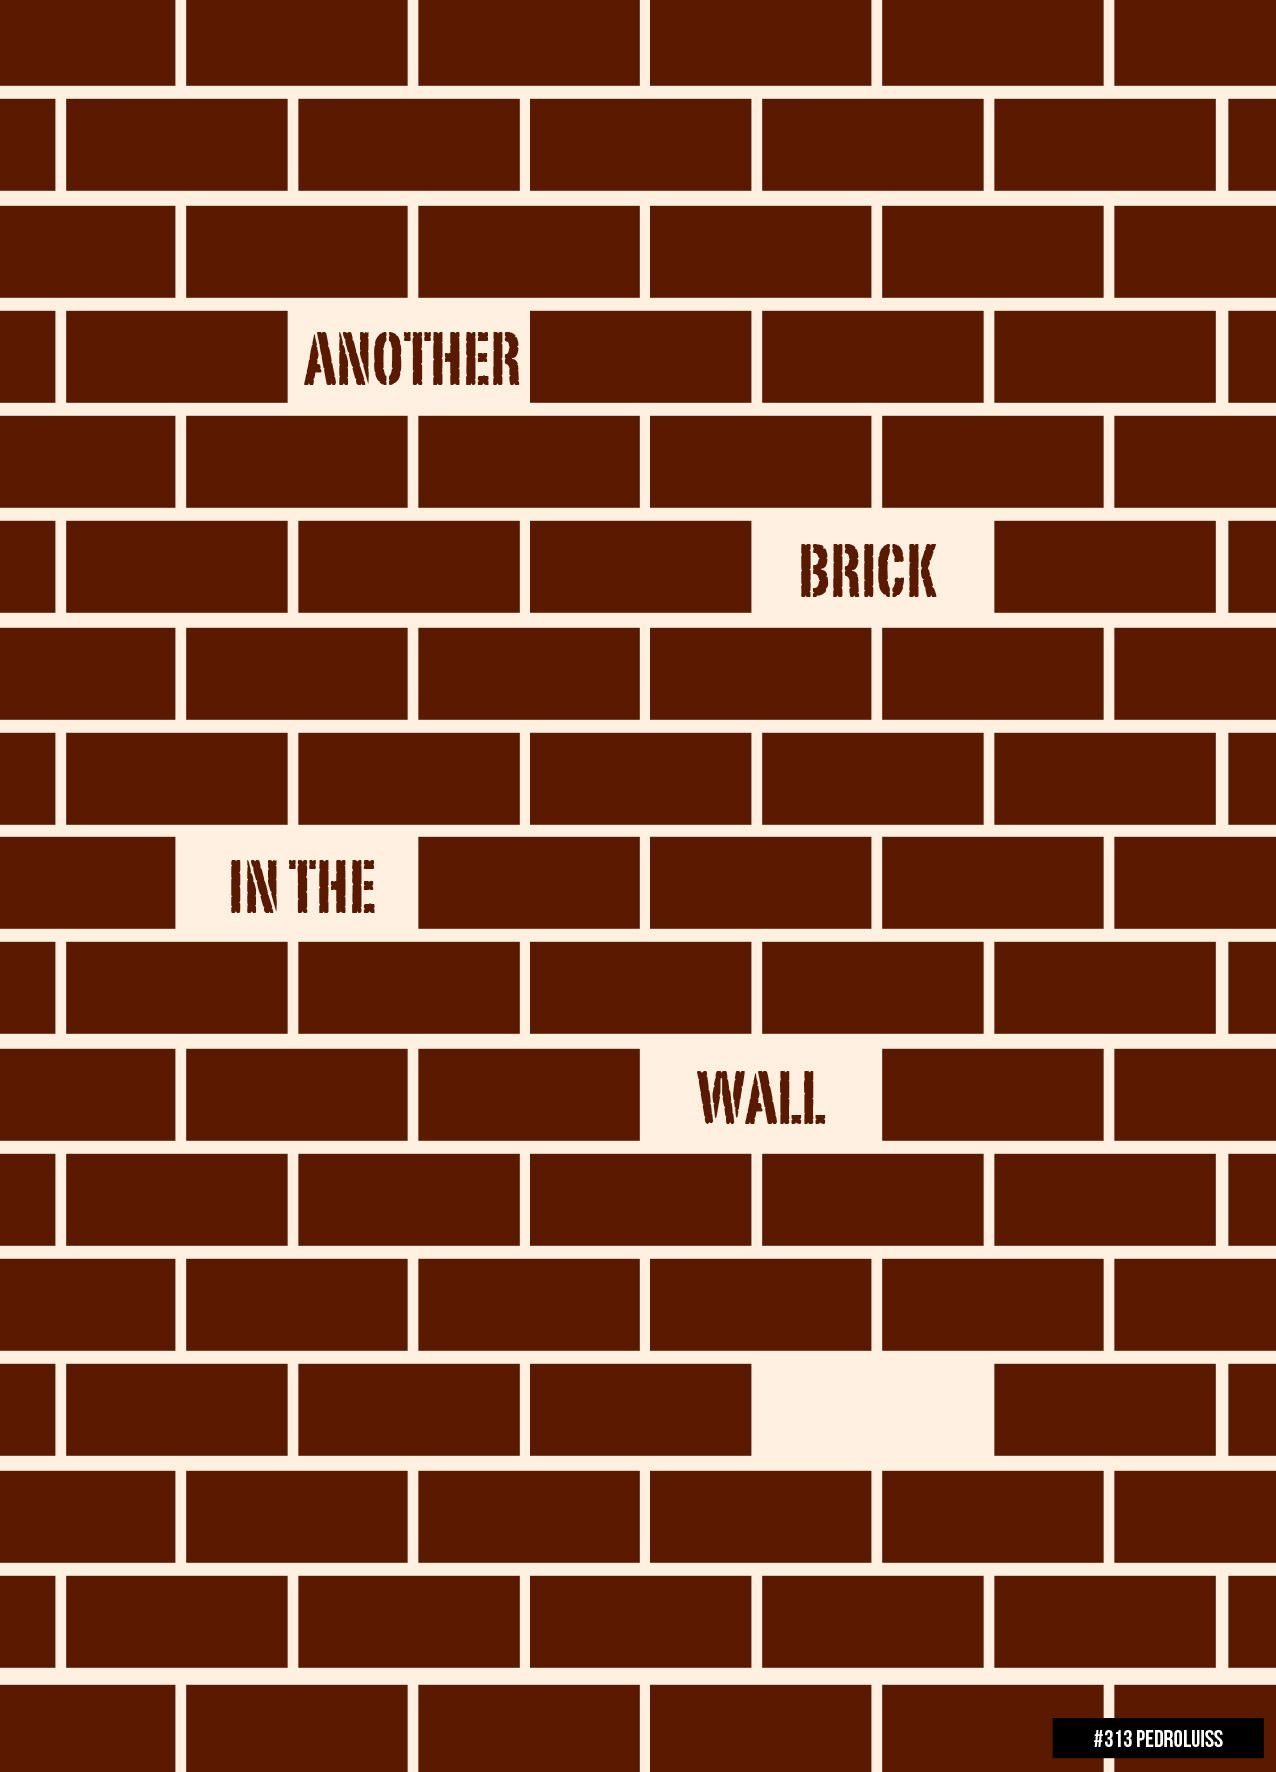 313 another brick in the wall poster papeis de